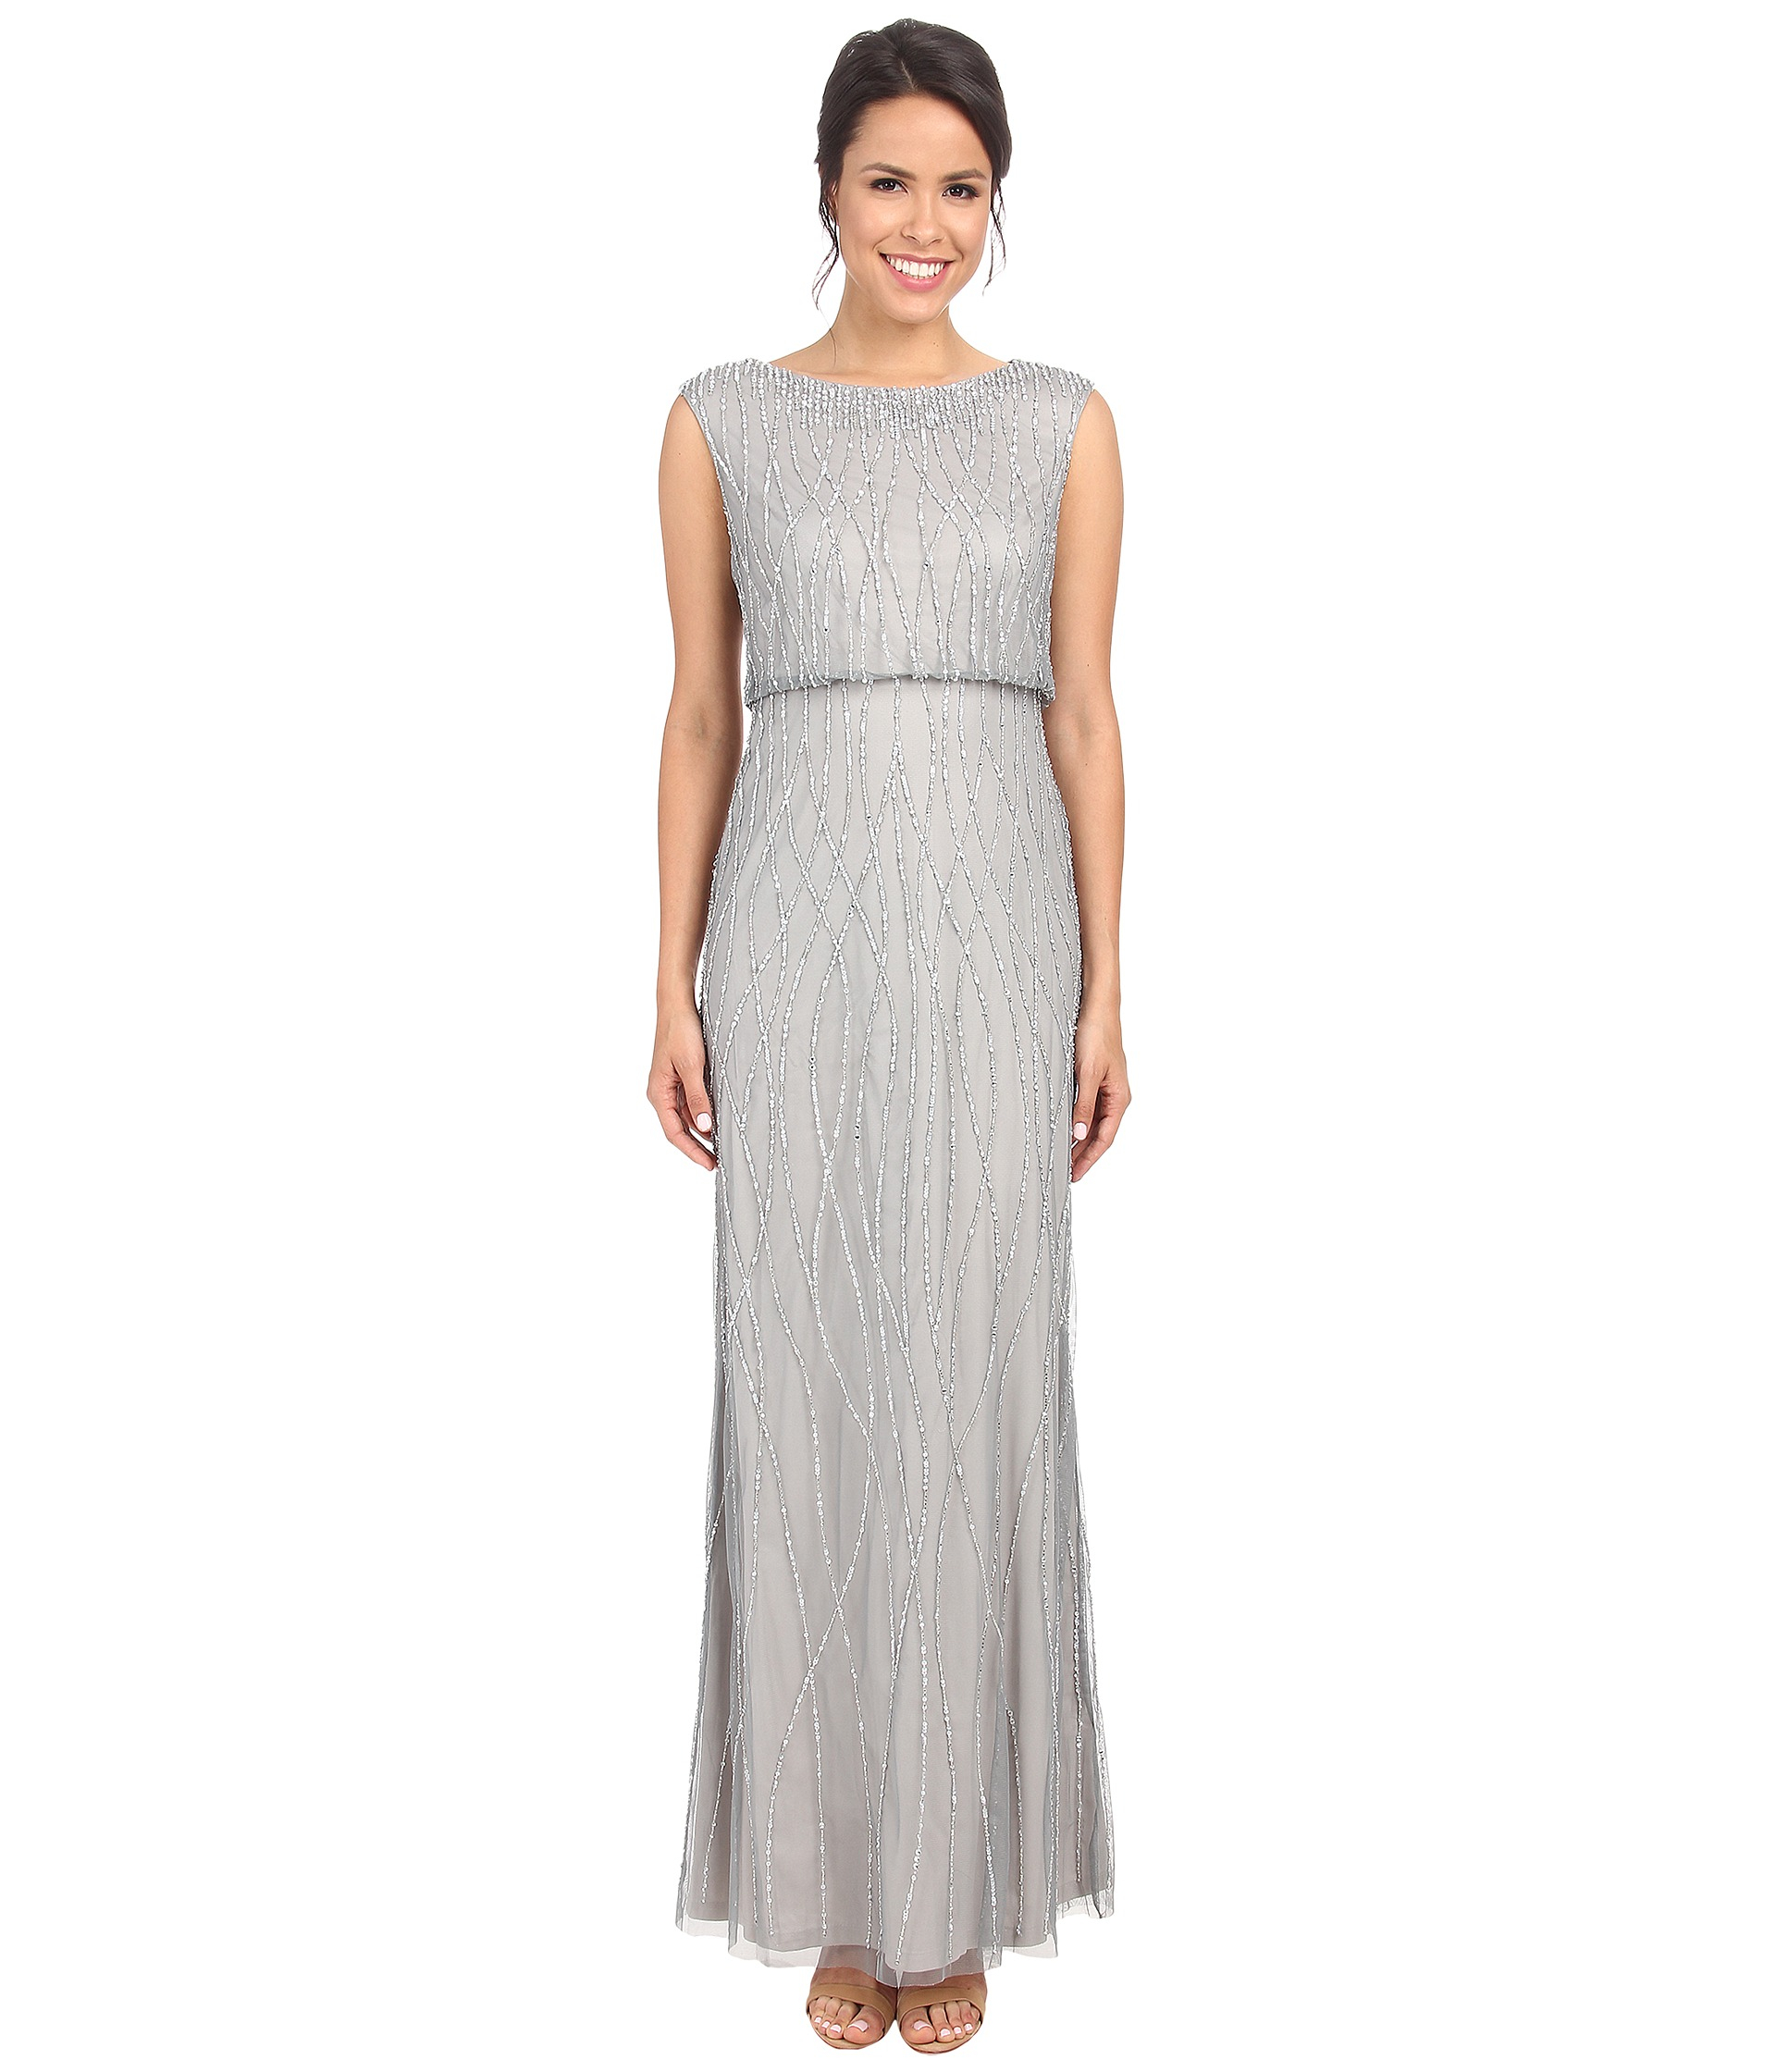 d57714b0f93 Adrianna Papell Short Sleeve Cocktail Dress With Floral Vine Beading ...